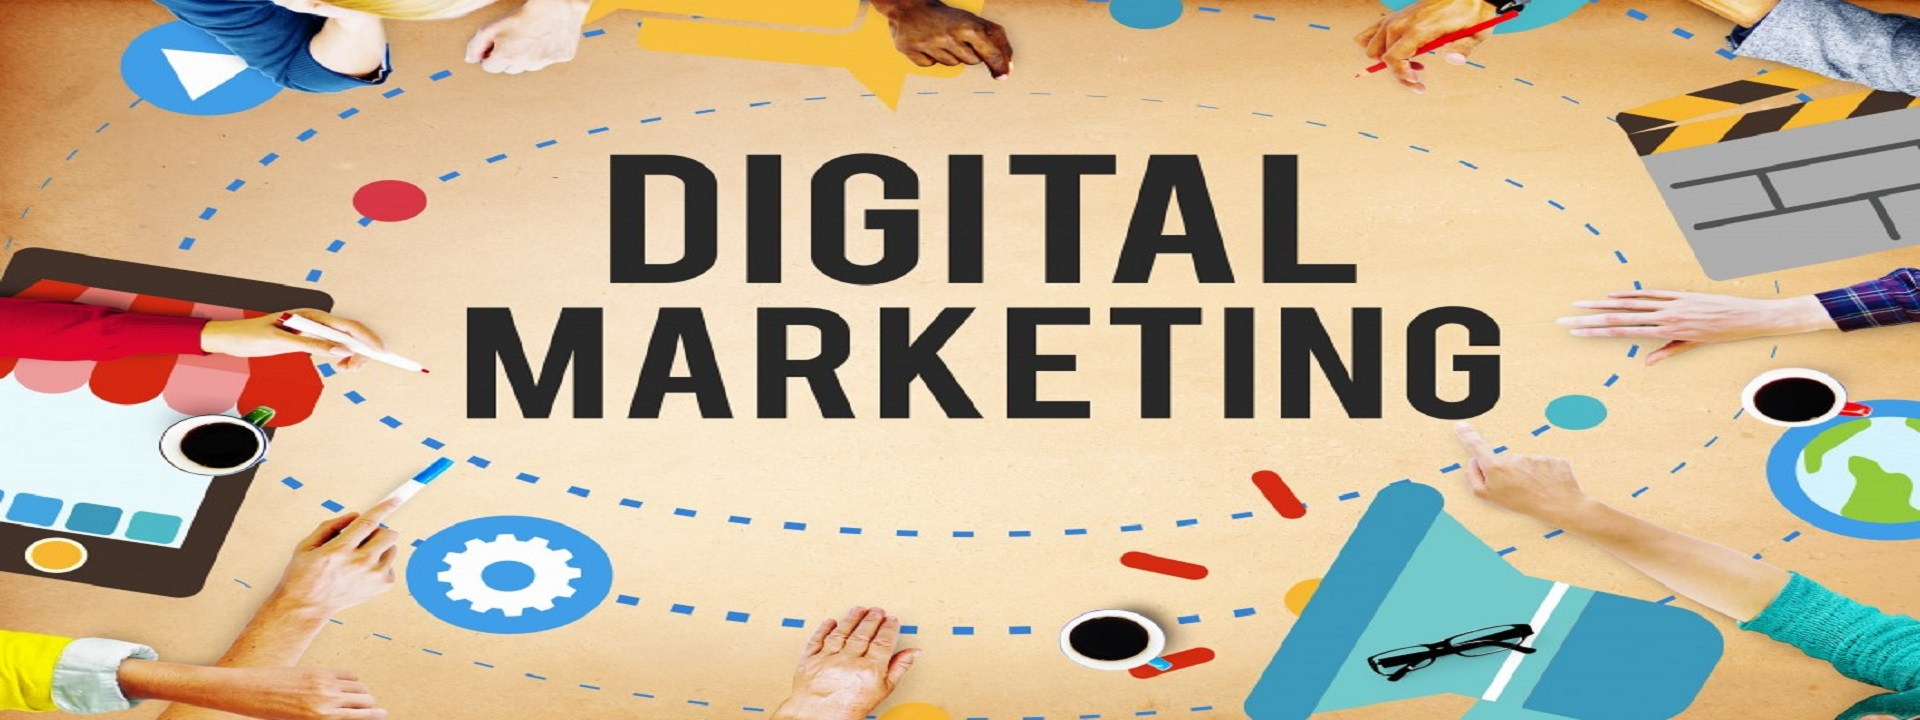 DigitalMarketing-1060x696.jpg-1920X720